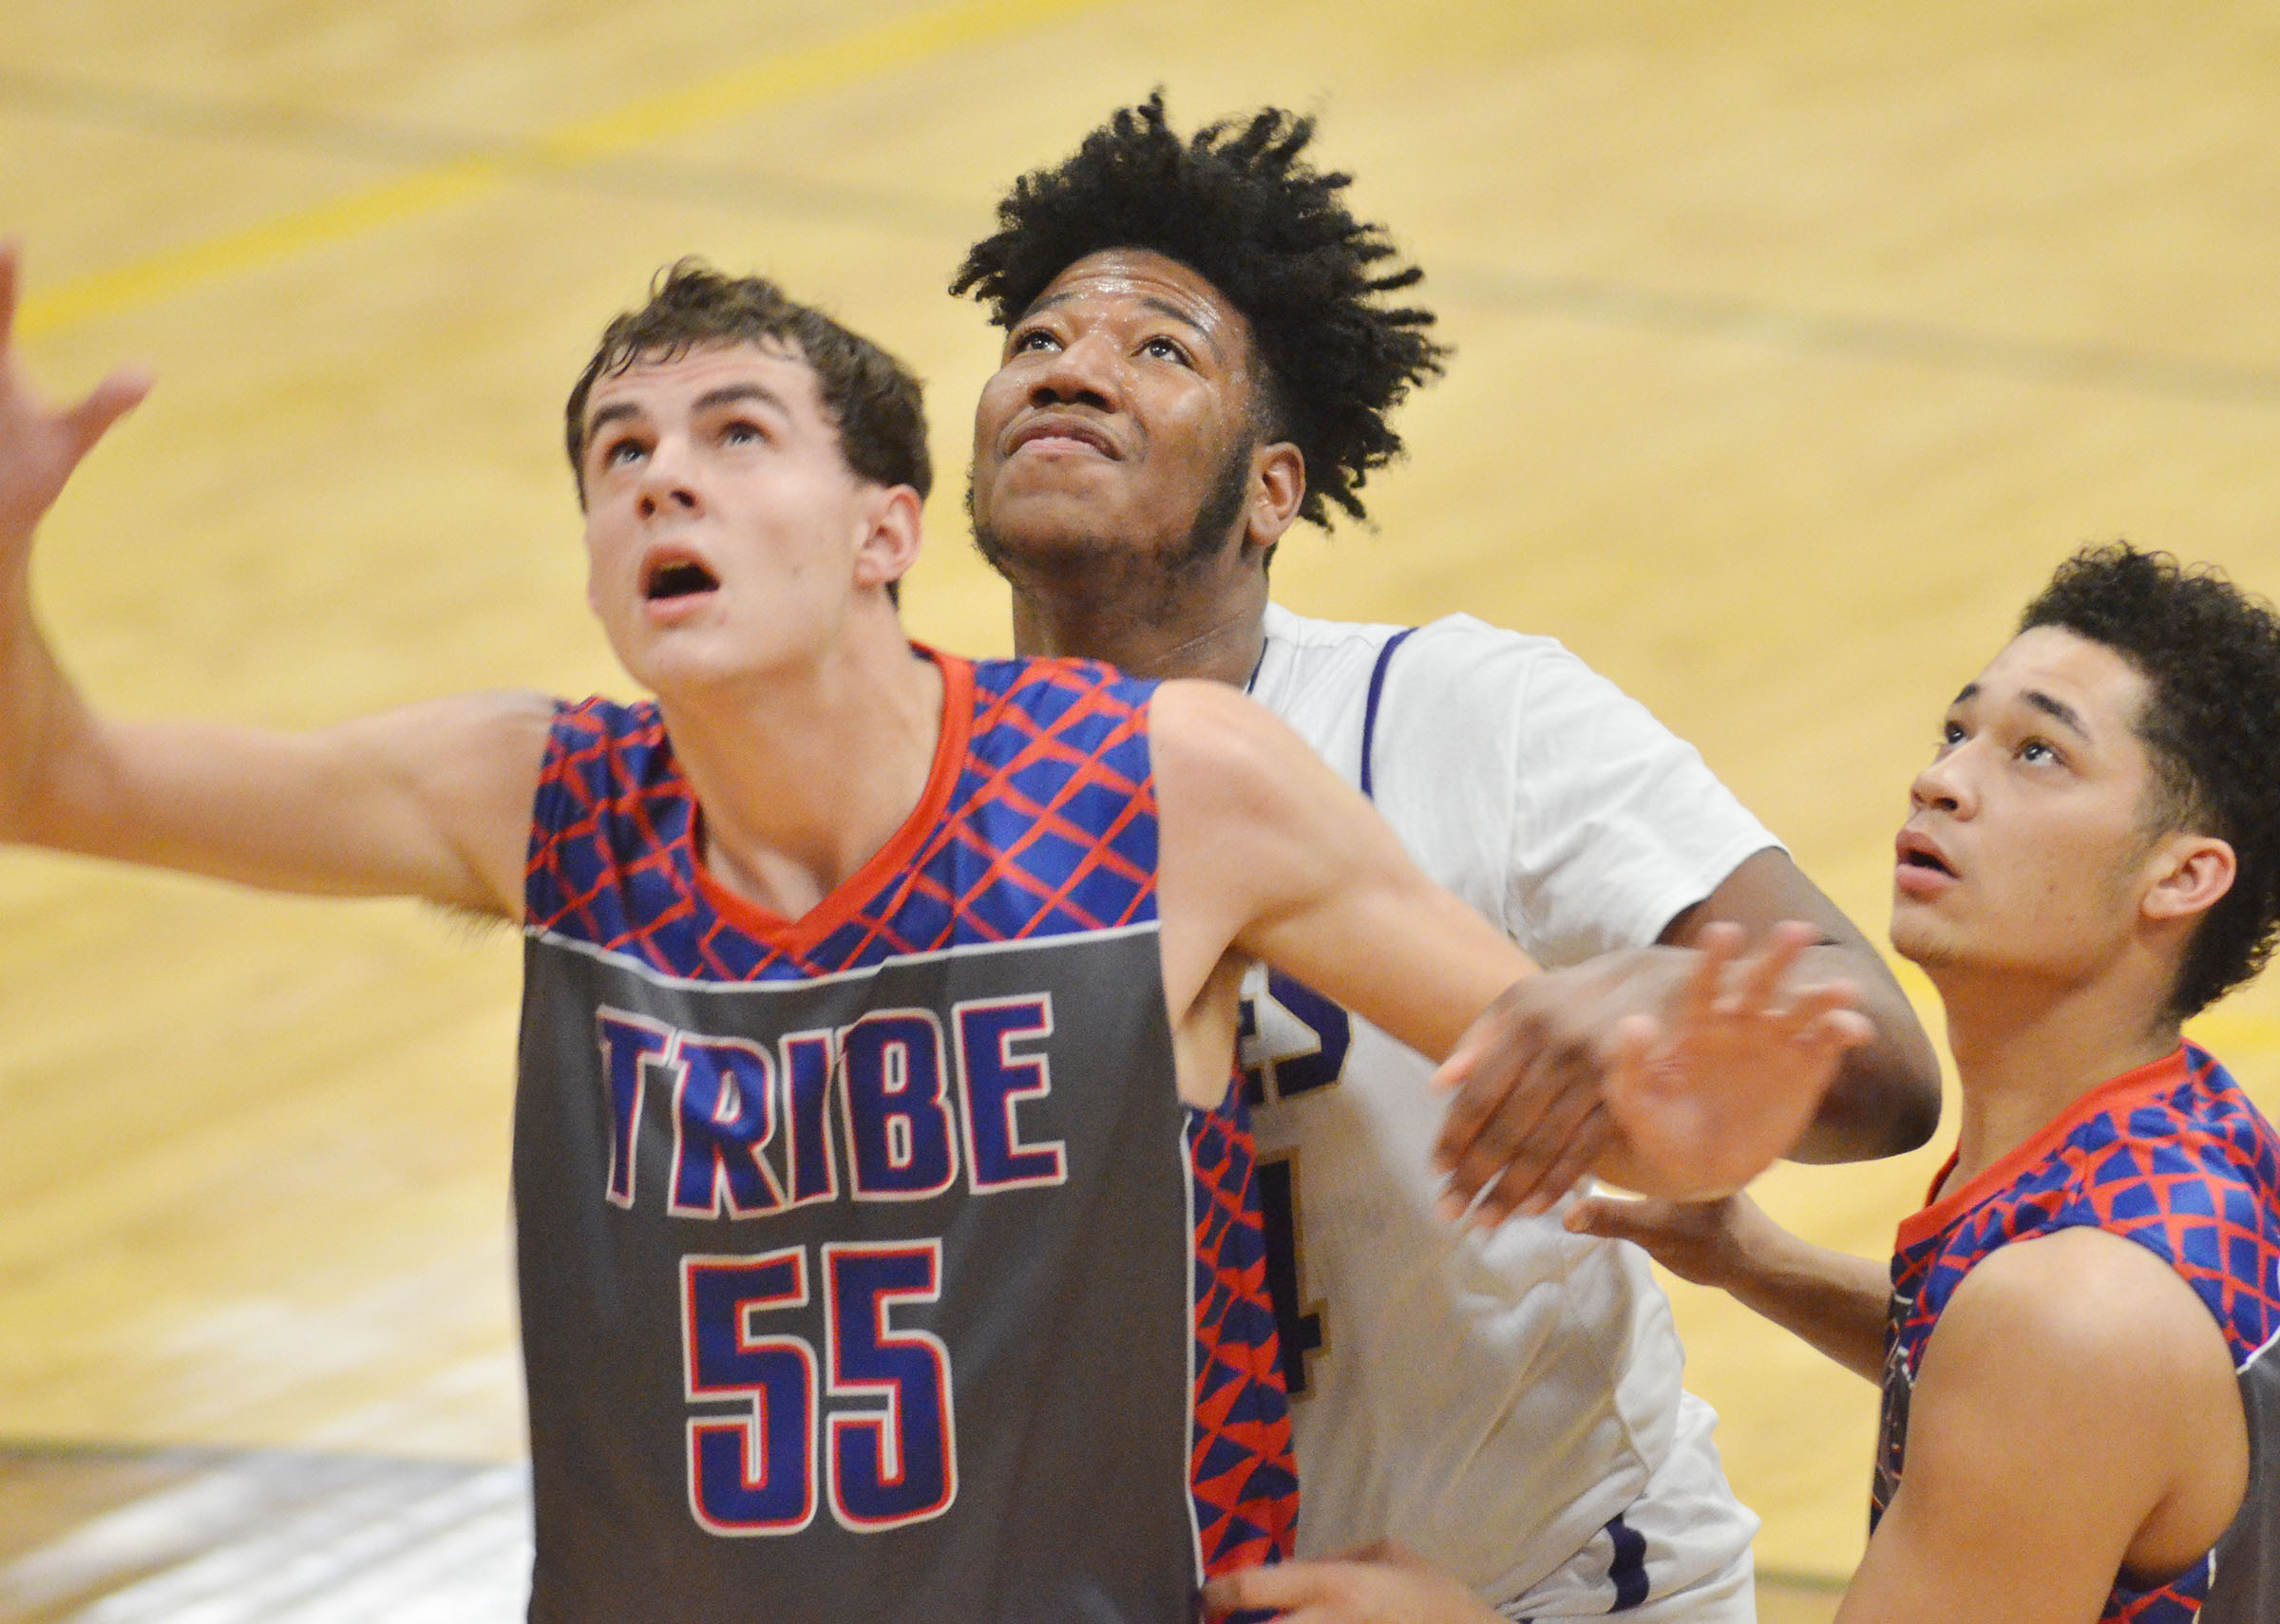 CHS senior Micah Corley battles for a rebound.